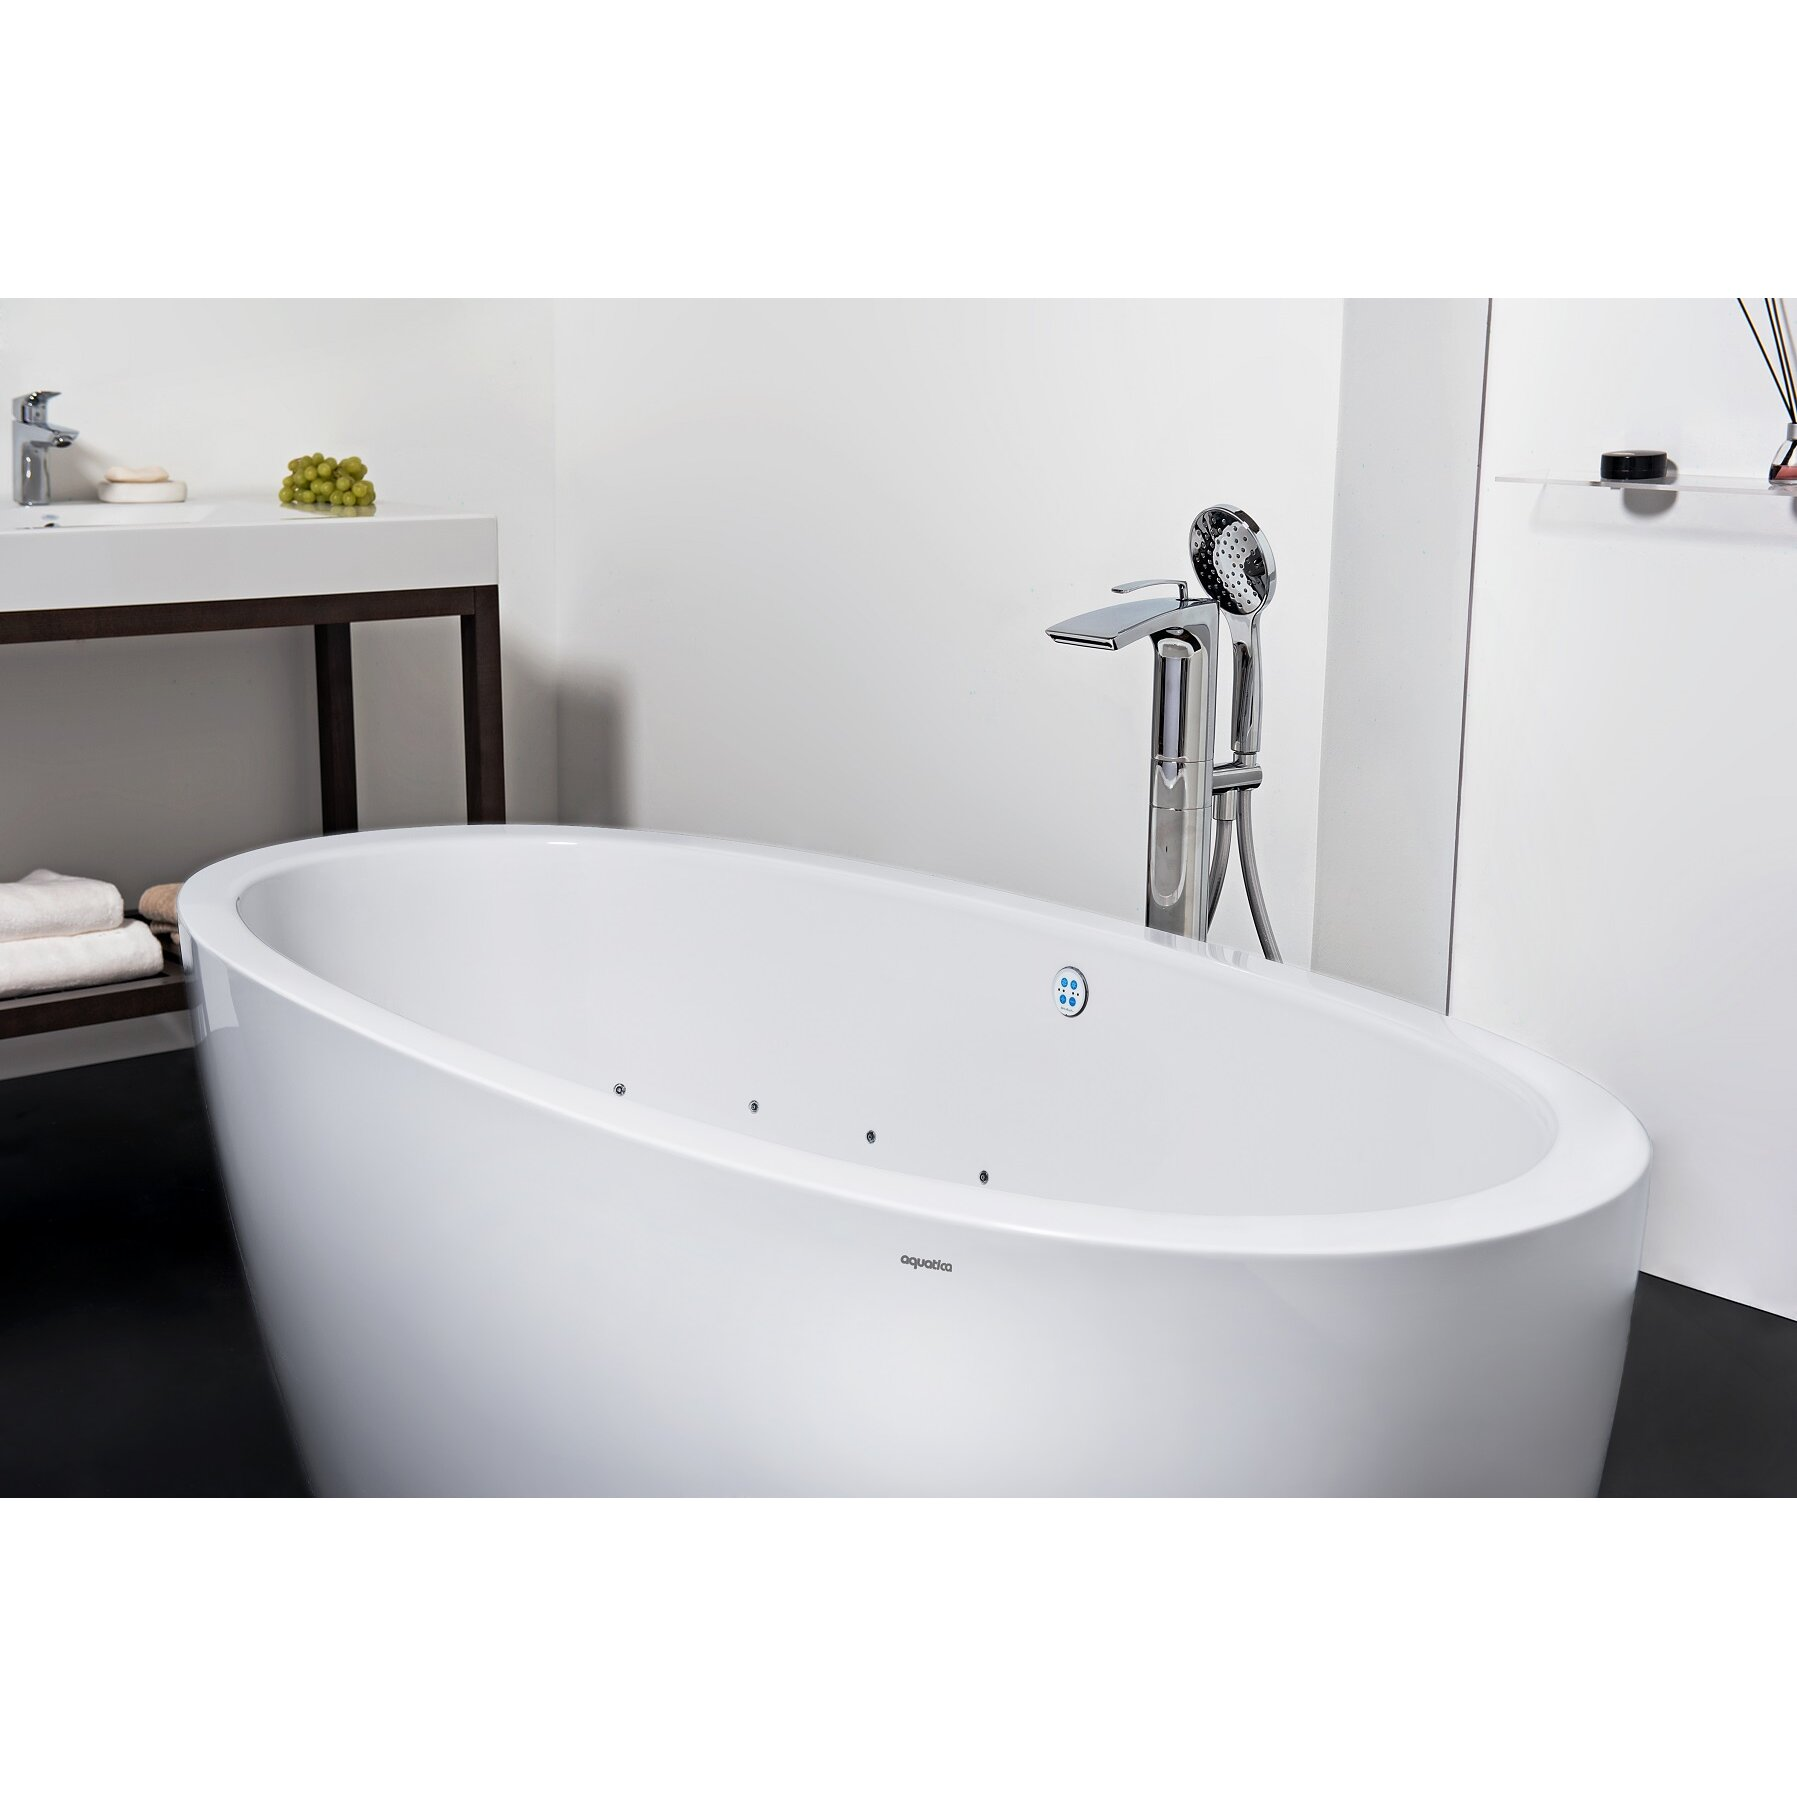 Aquatica purescape 63 x 30 whirlpool bathtub wayfair for Pros and cons of acrylic bathtubs